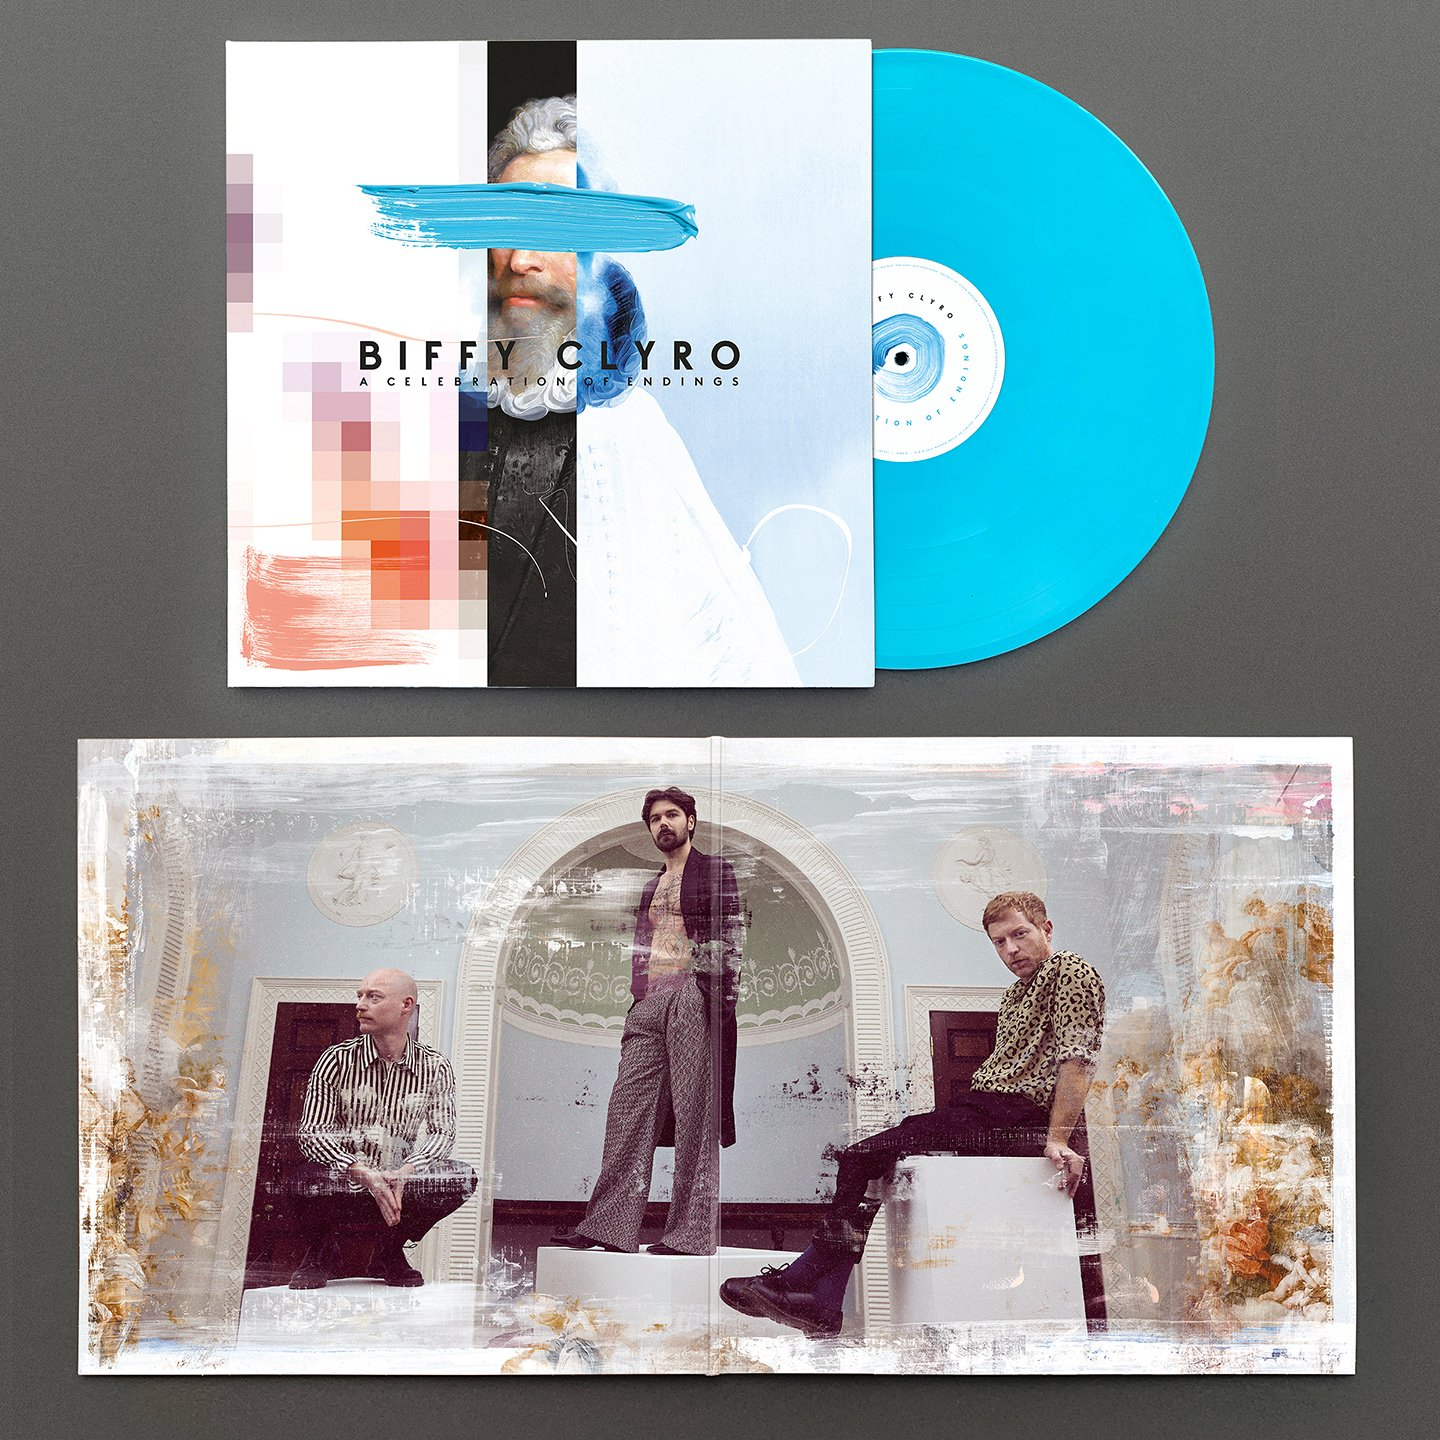 BIFFY CLYRO – A Celebration Of Endings – LP – Limited Blue Vinyl [AUG 14th]